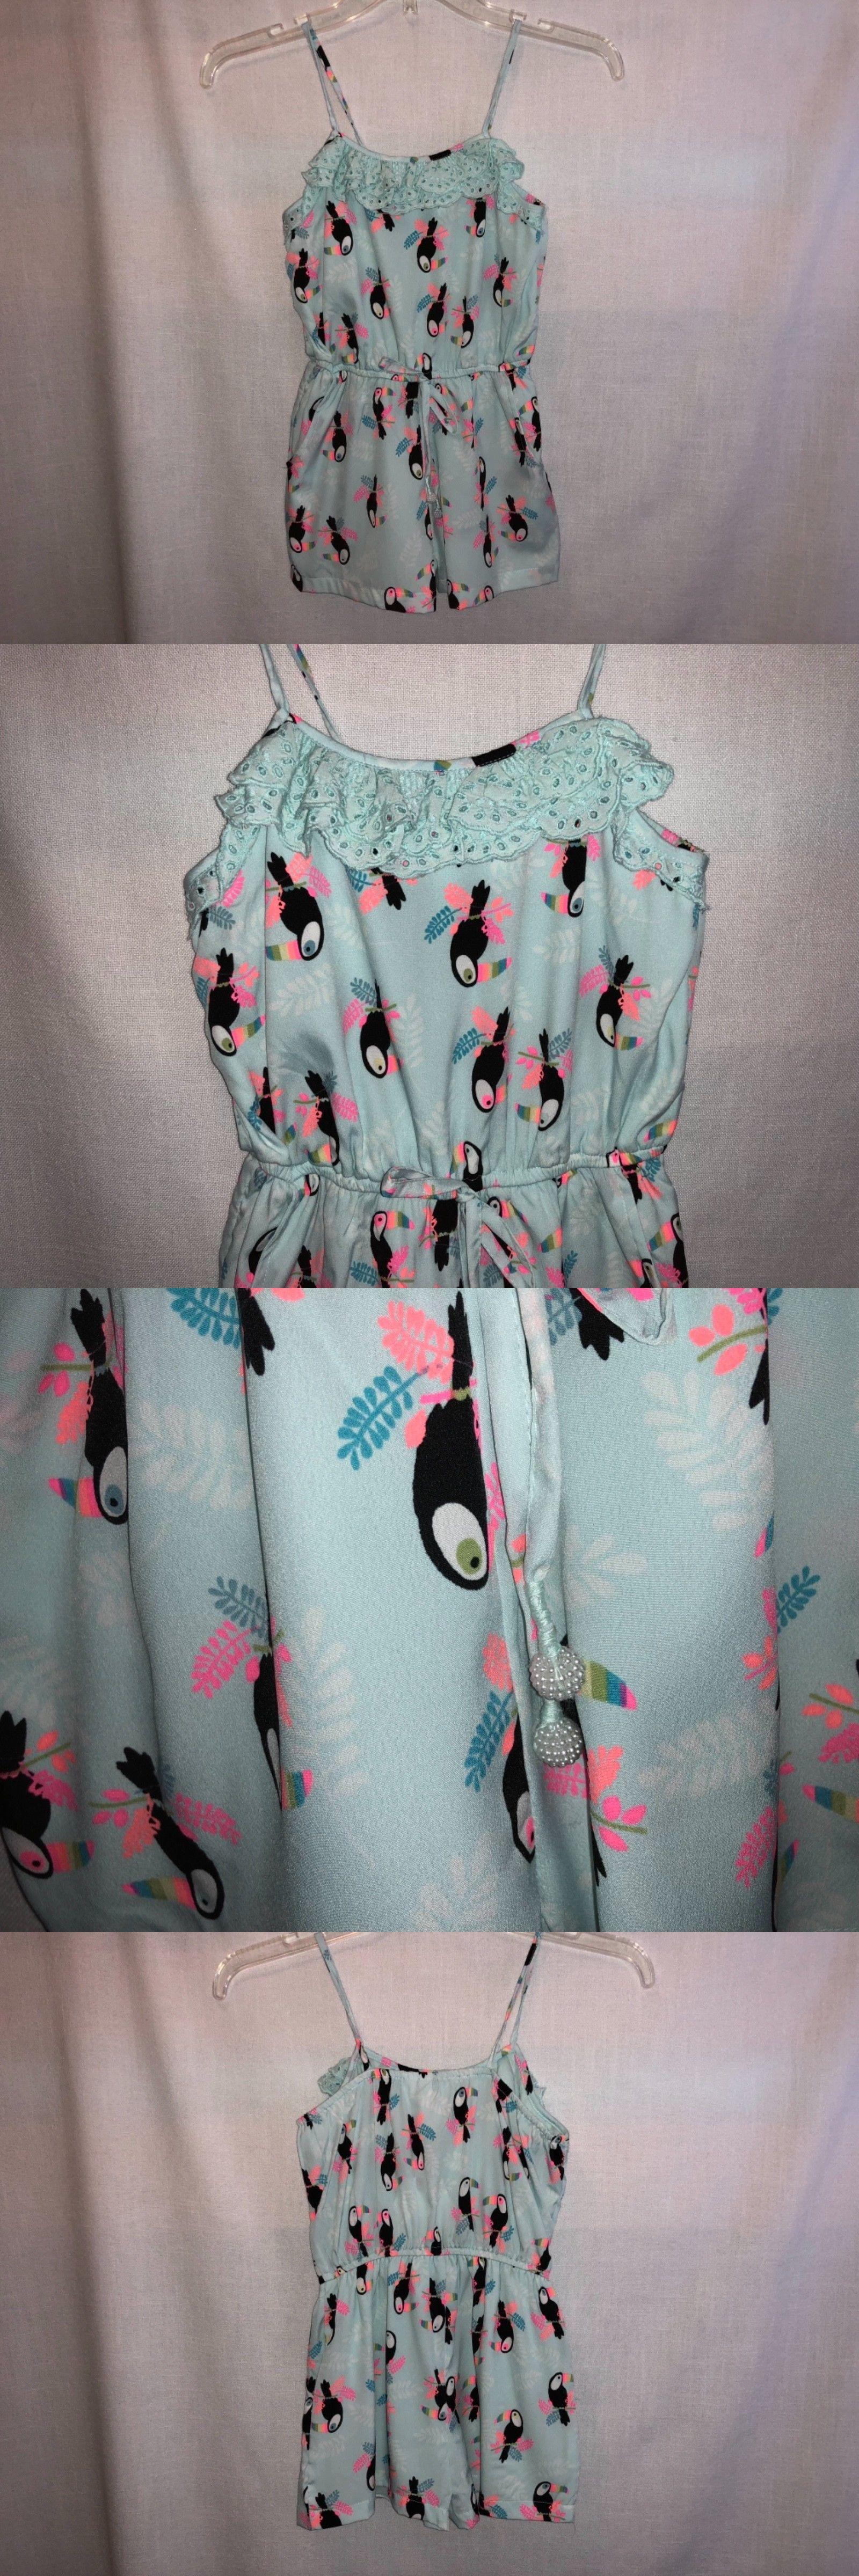 bb8a6d7506de Jumpsuits and Rompers 175528  Nwt! Girls Sz 8 Japna Kids Too Cute Romper W  Toucan Print -  BUY IT NOW ONLY   21.99 on  eBay  jumpsuits  rompers  girls  ...